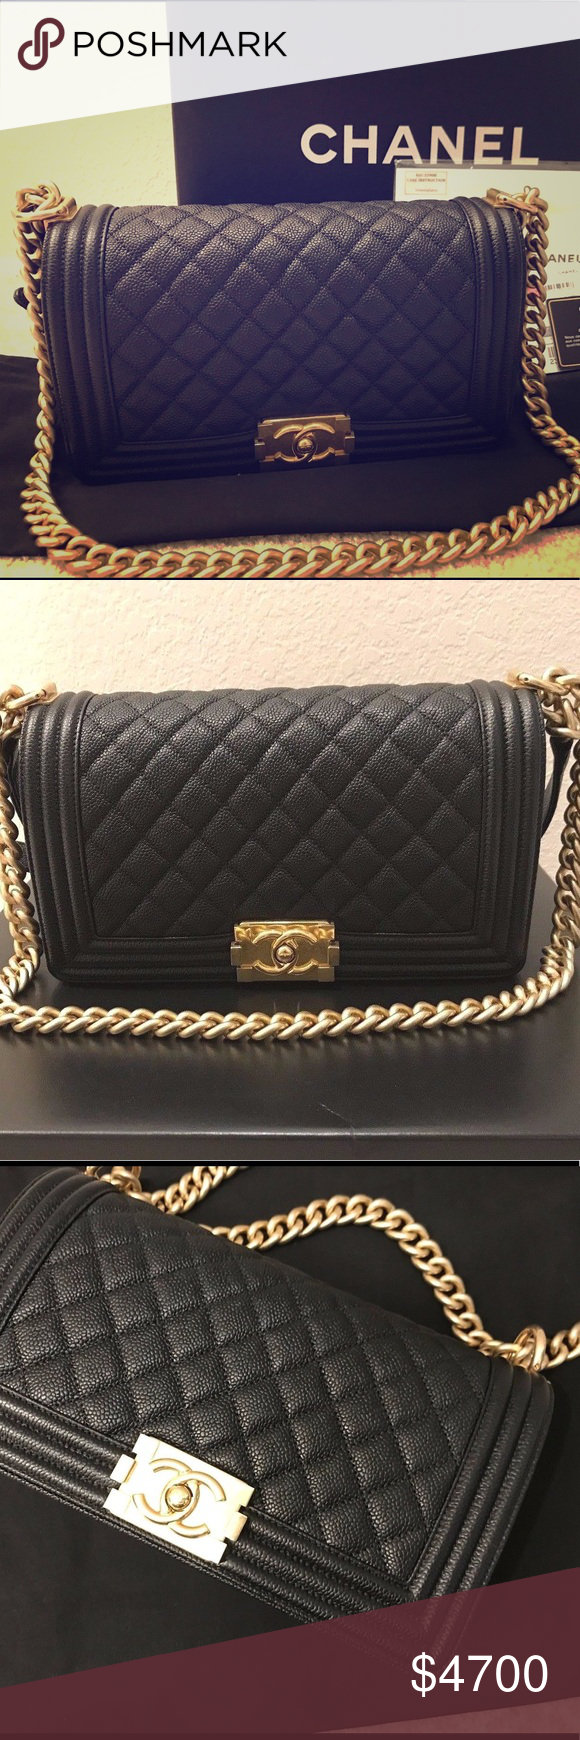 185b33ae054 It s an excellent condition Chanel le boy bag in black caviar leather and gold  shiny hardware.